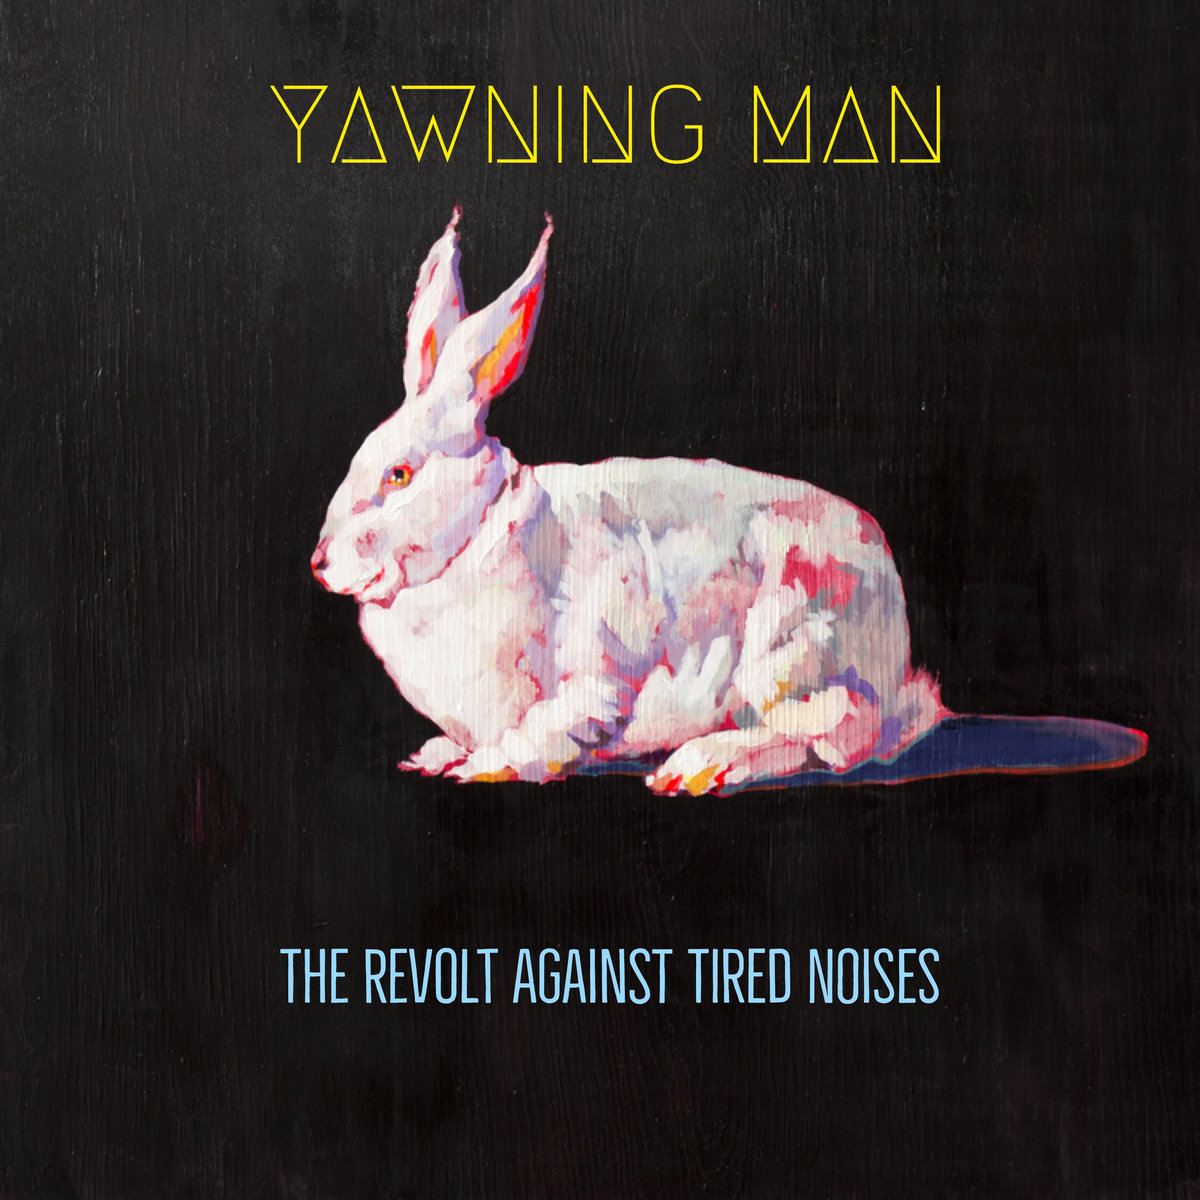 Resultado de imagen para yawning man the revolt against tired noises